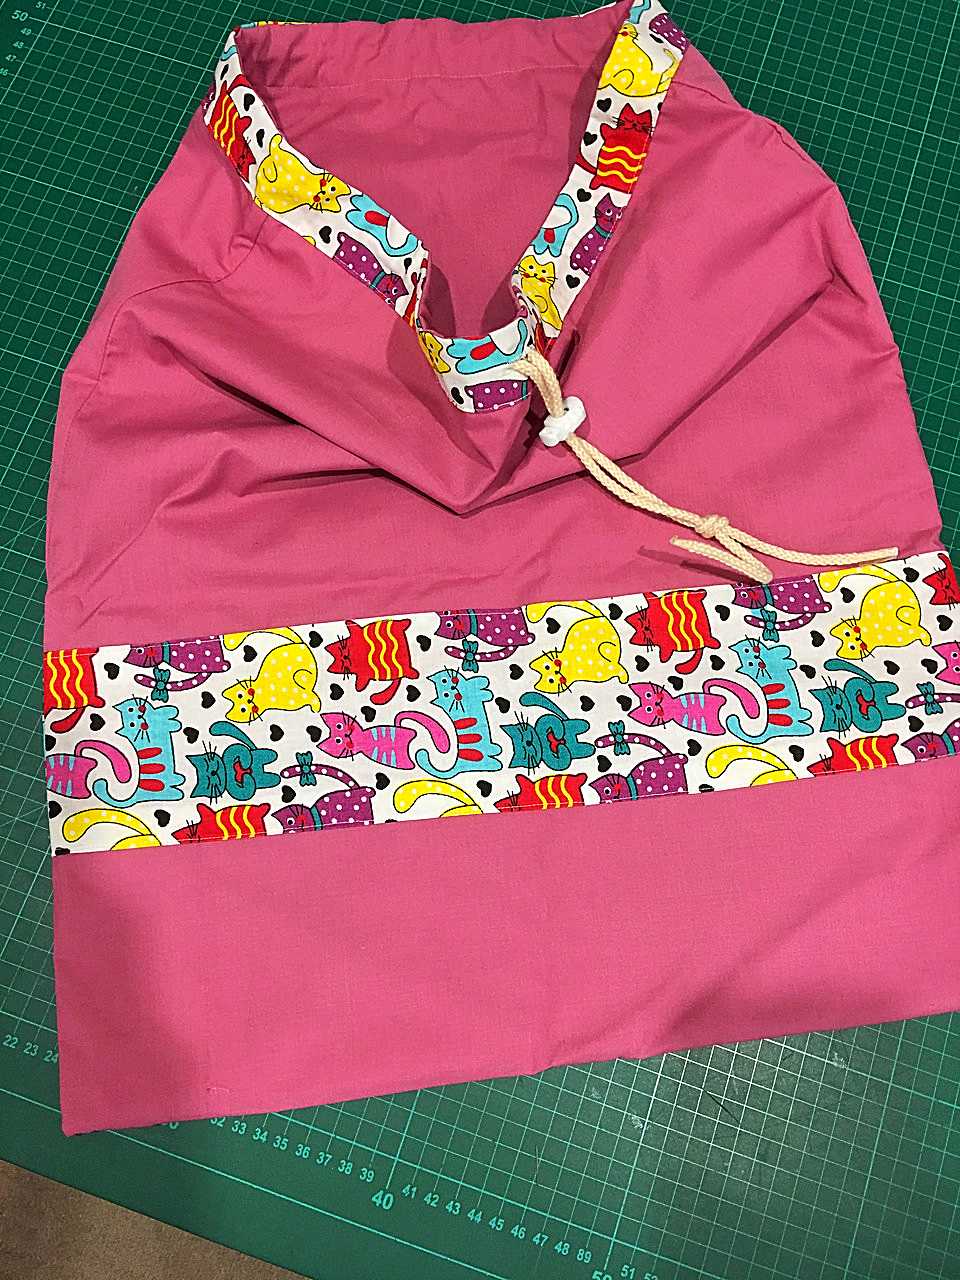 Sheet or library bags for school kids